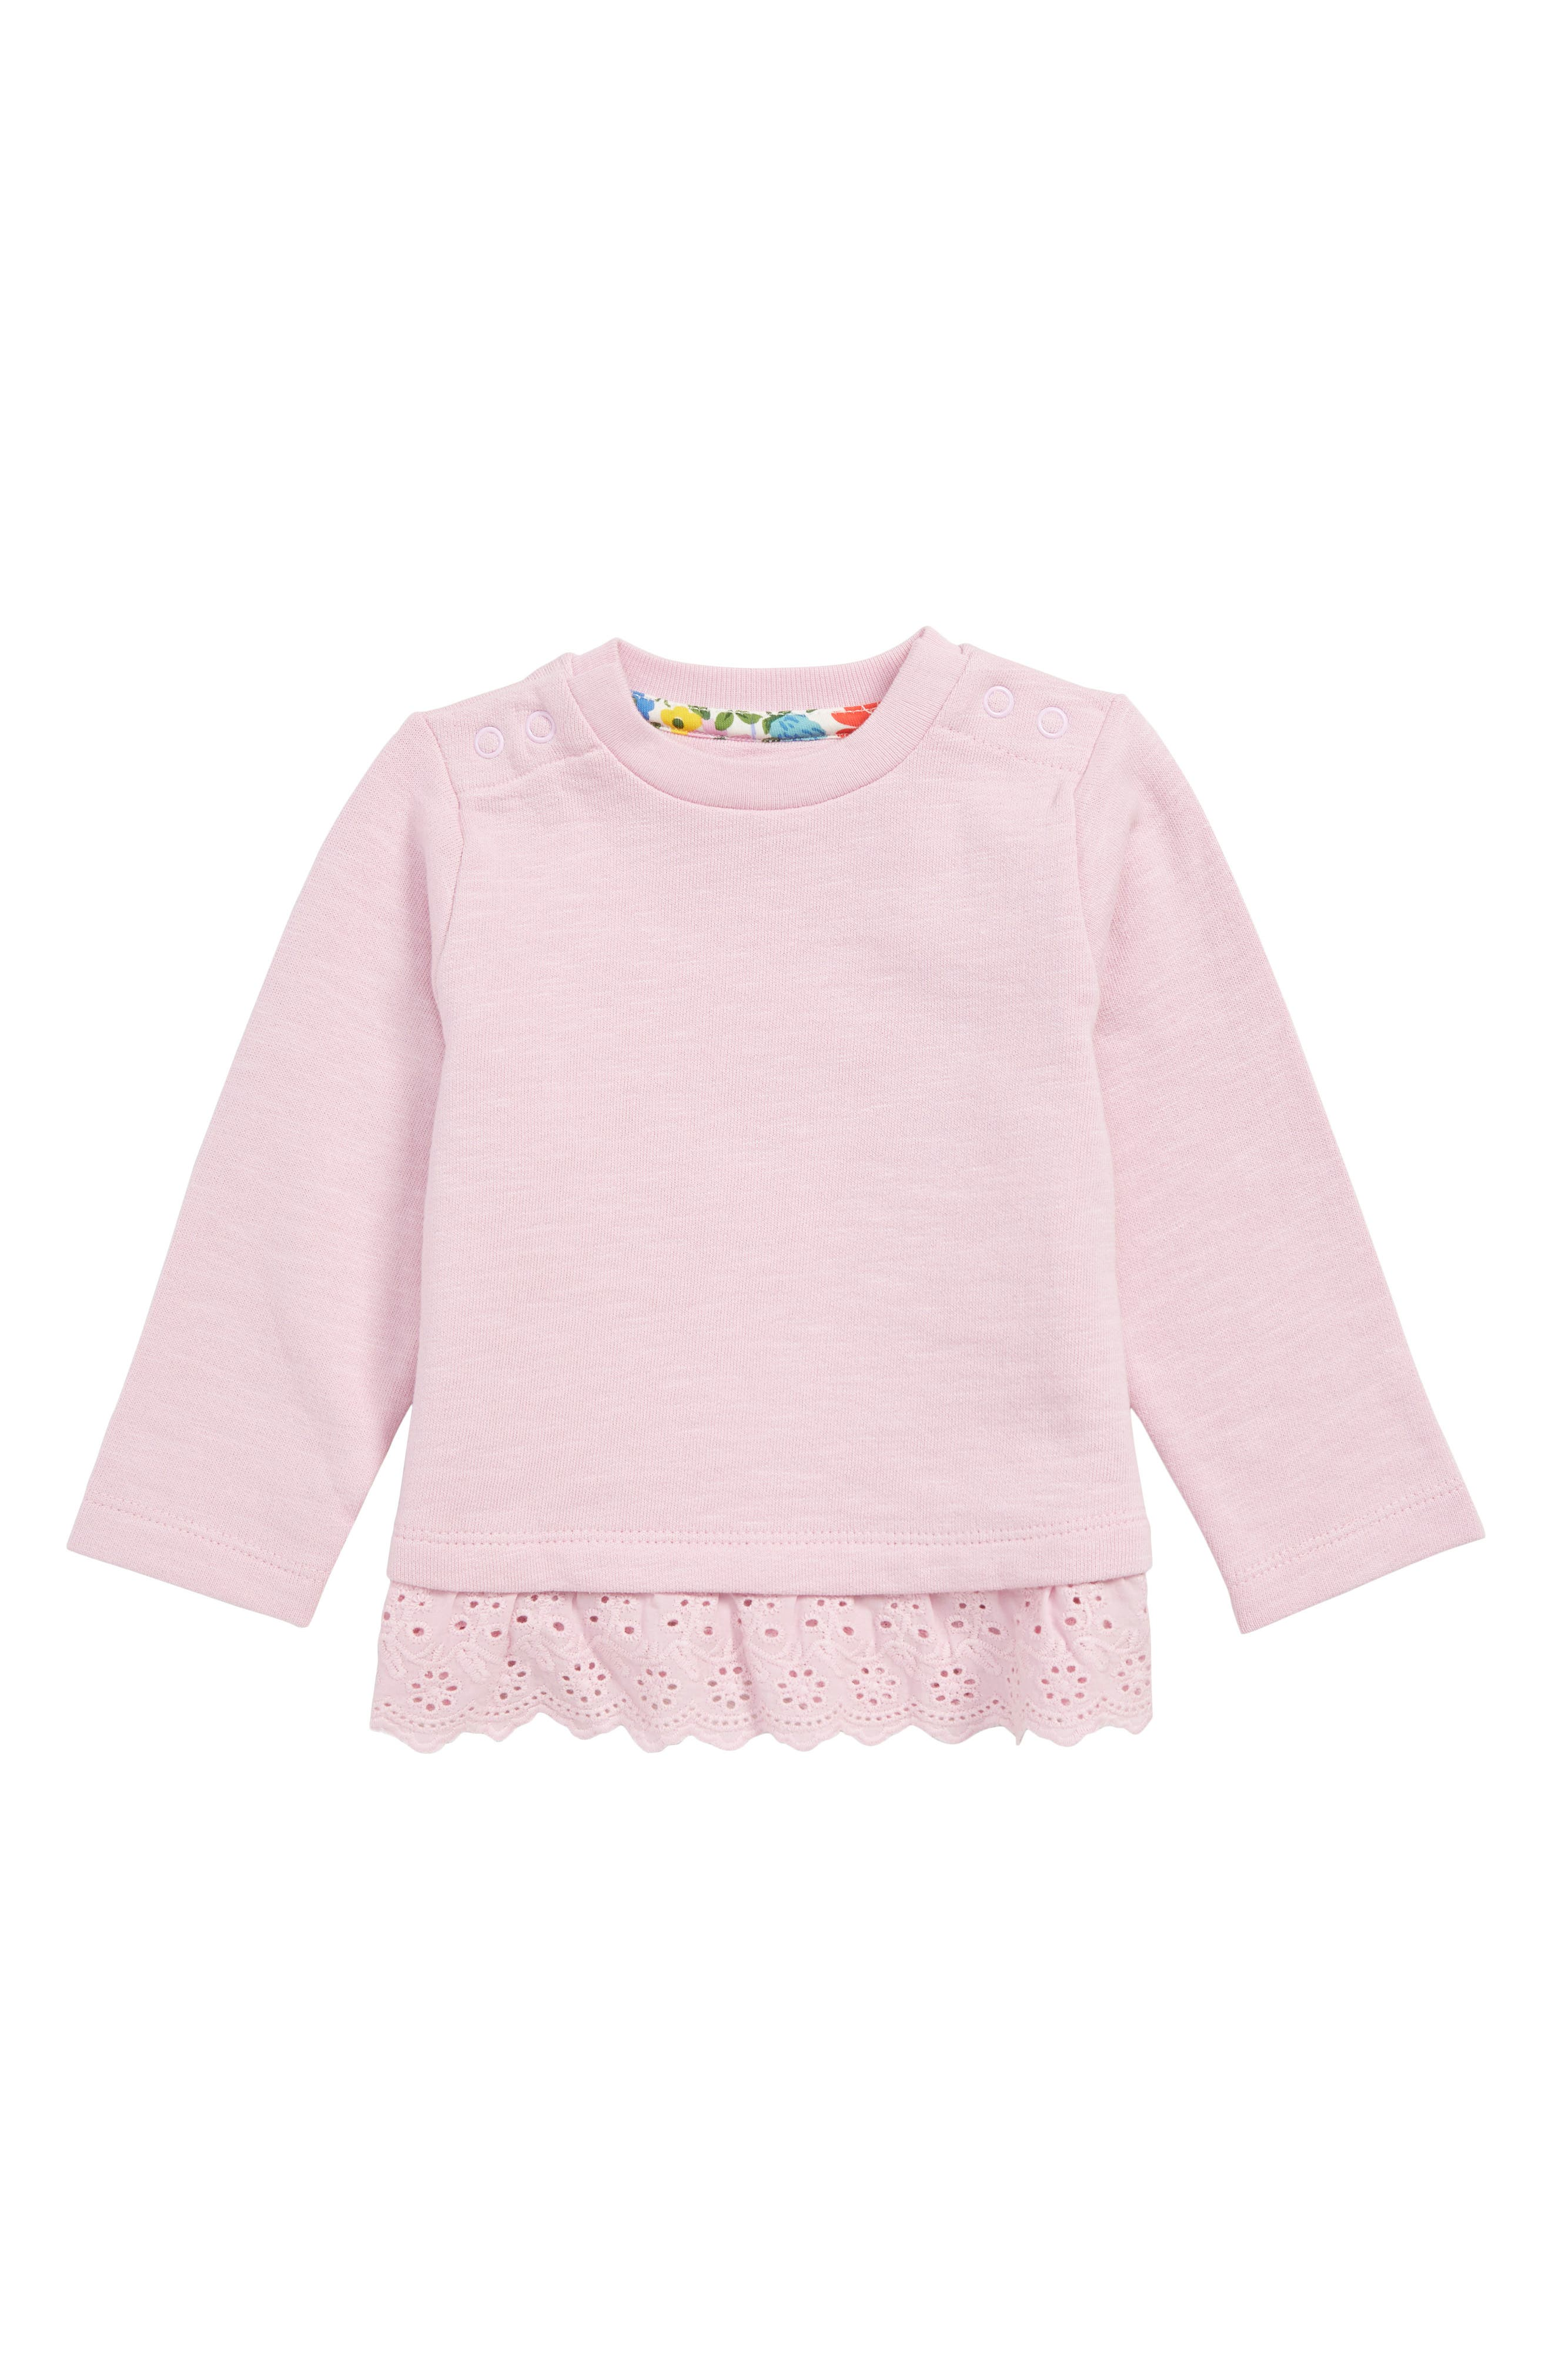 MINI BODEN, Frilly Broderie Sweatshirt, Main thumbnail 1, color, 664